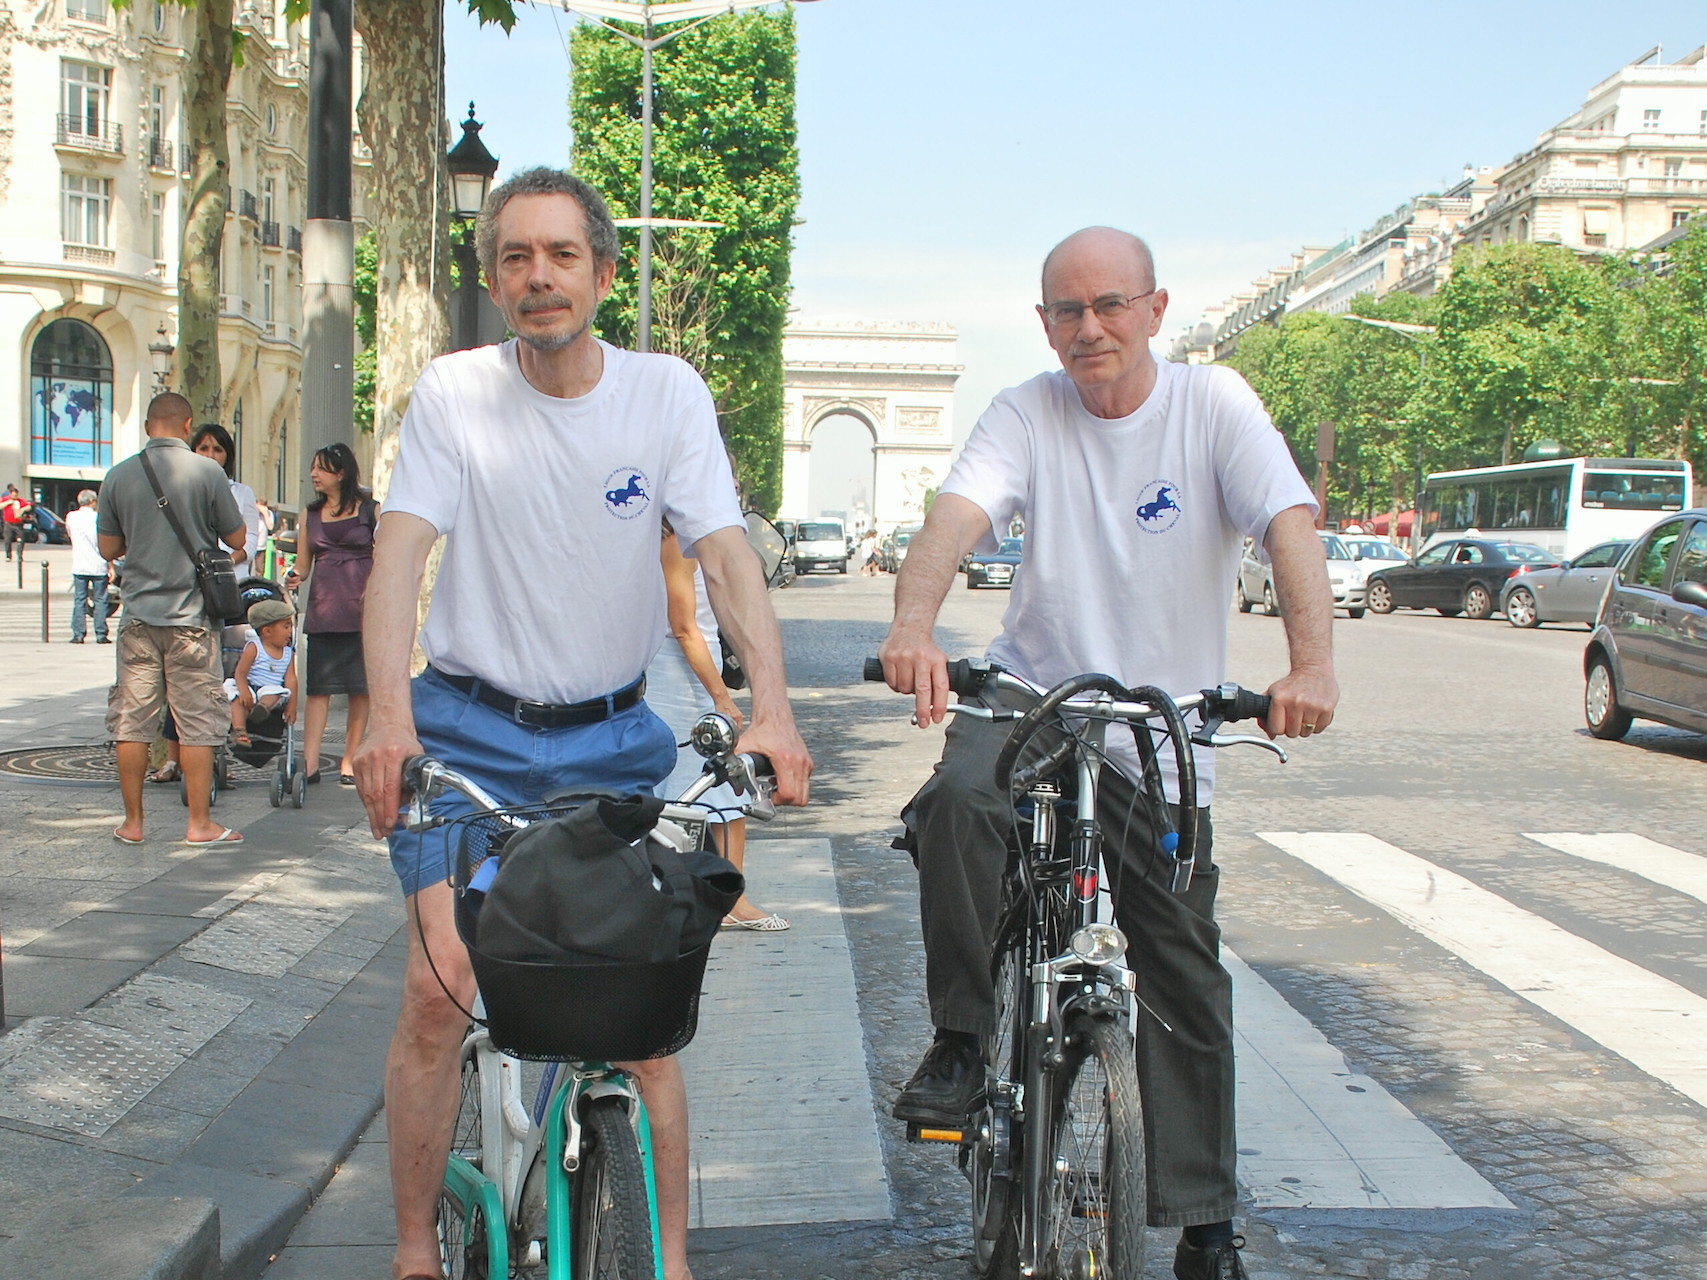 Intrepid duo: Cramer (right) with Alan Kennedy on the Champs Elysees in Paris during their marathon charity bike ride. Photo: John Gilmore